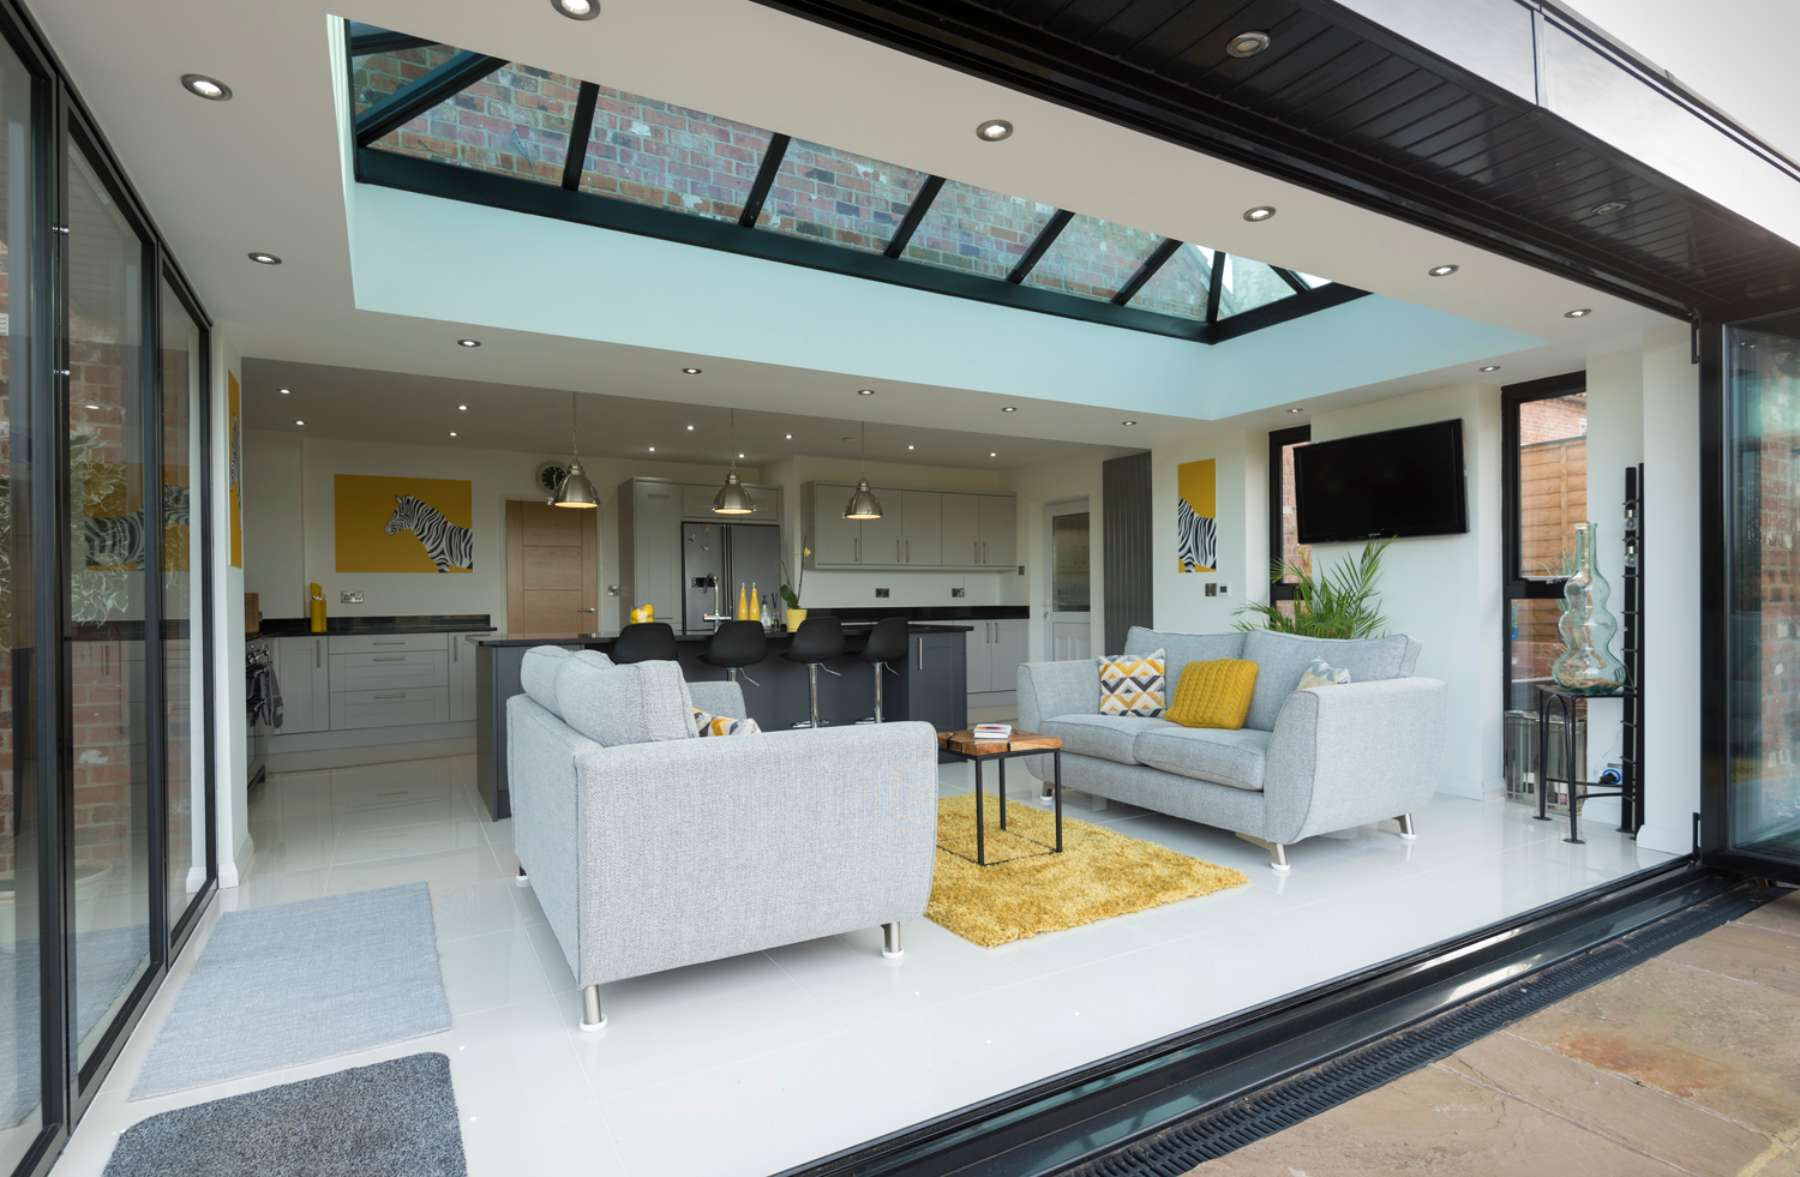 House extensions Nottingham